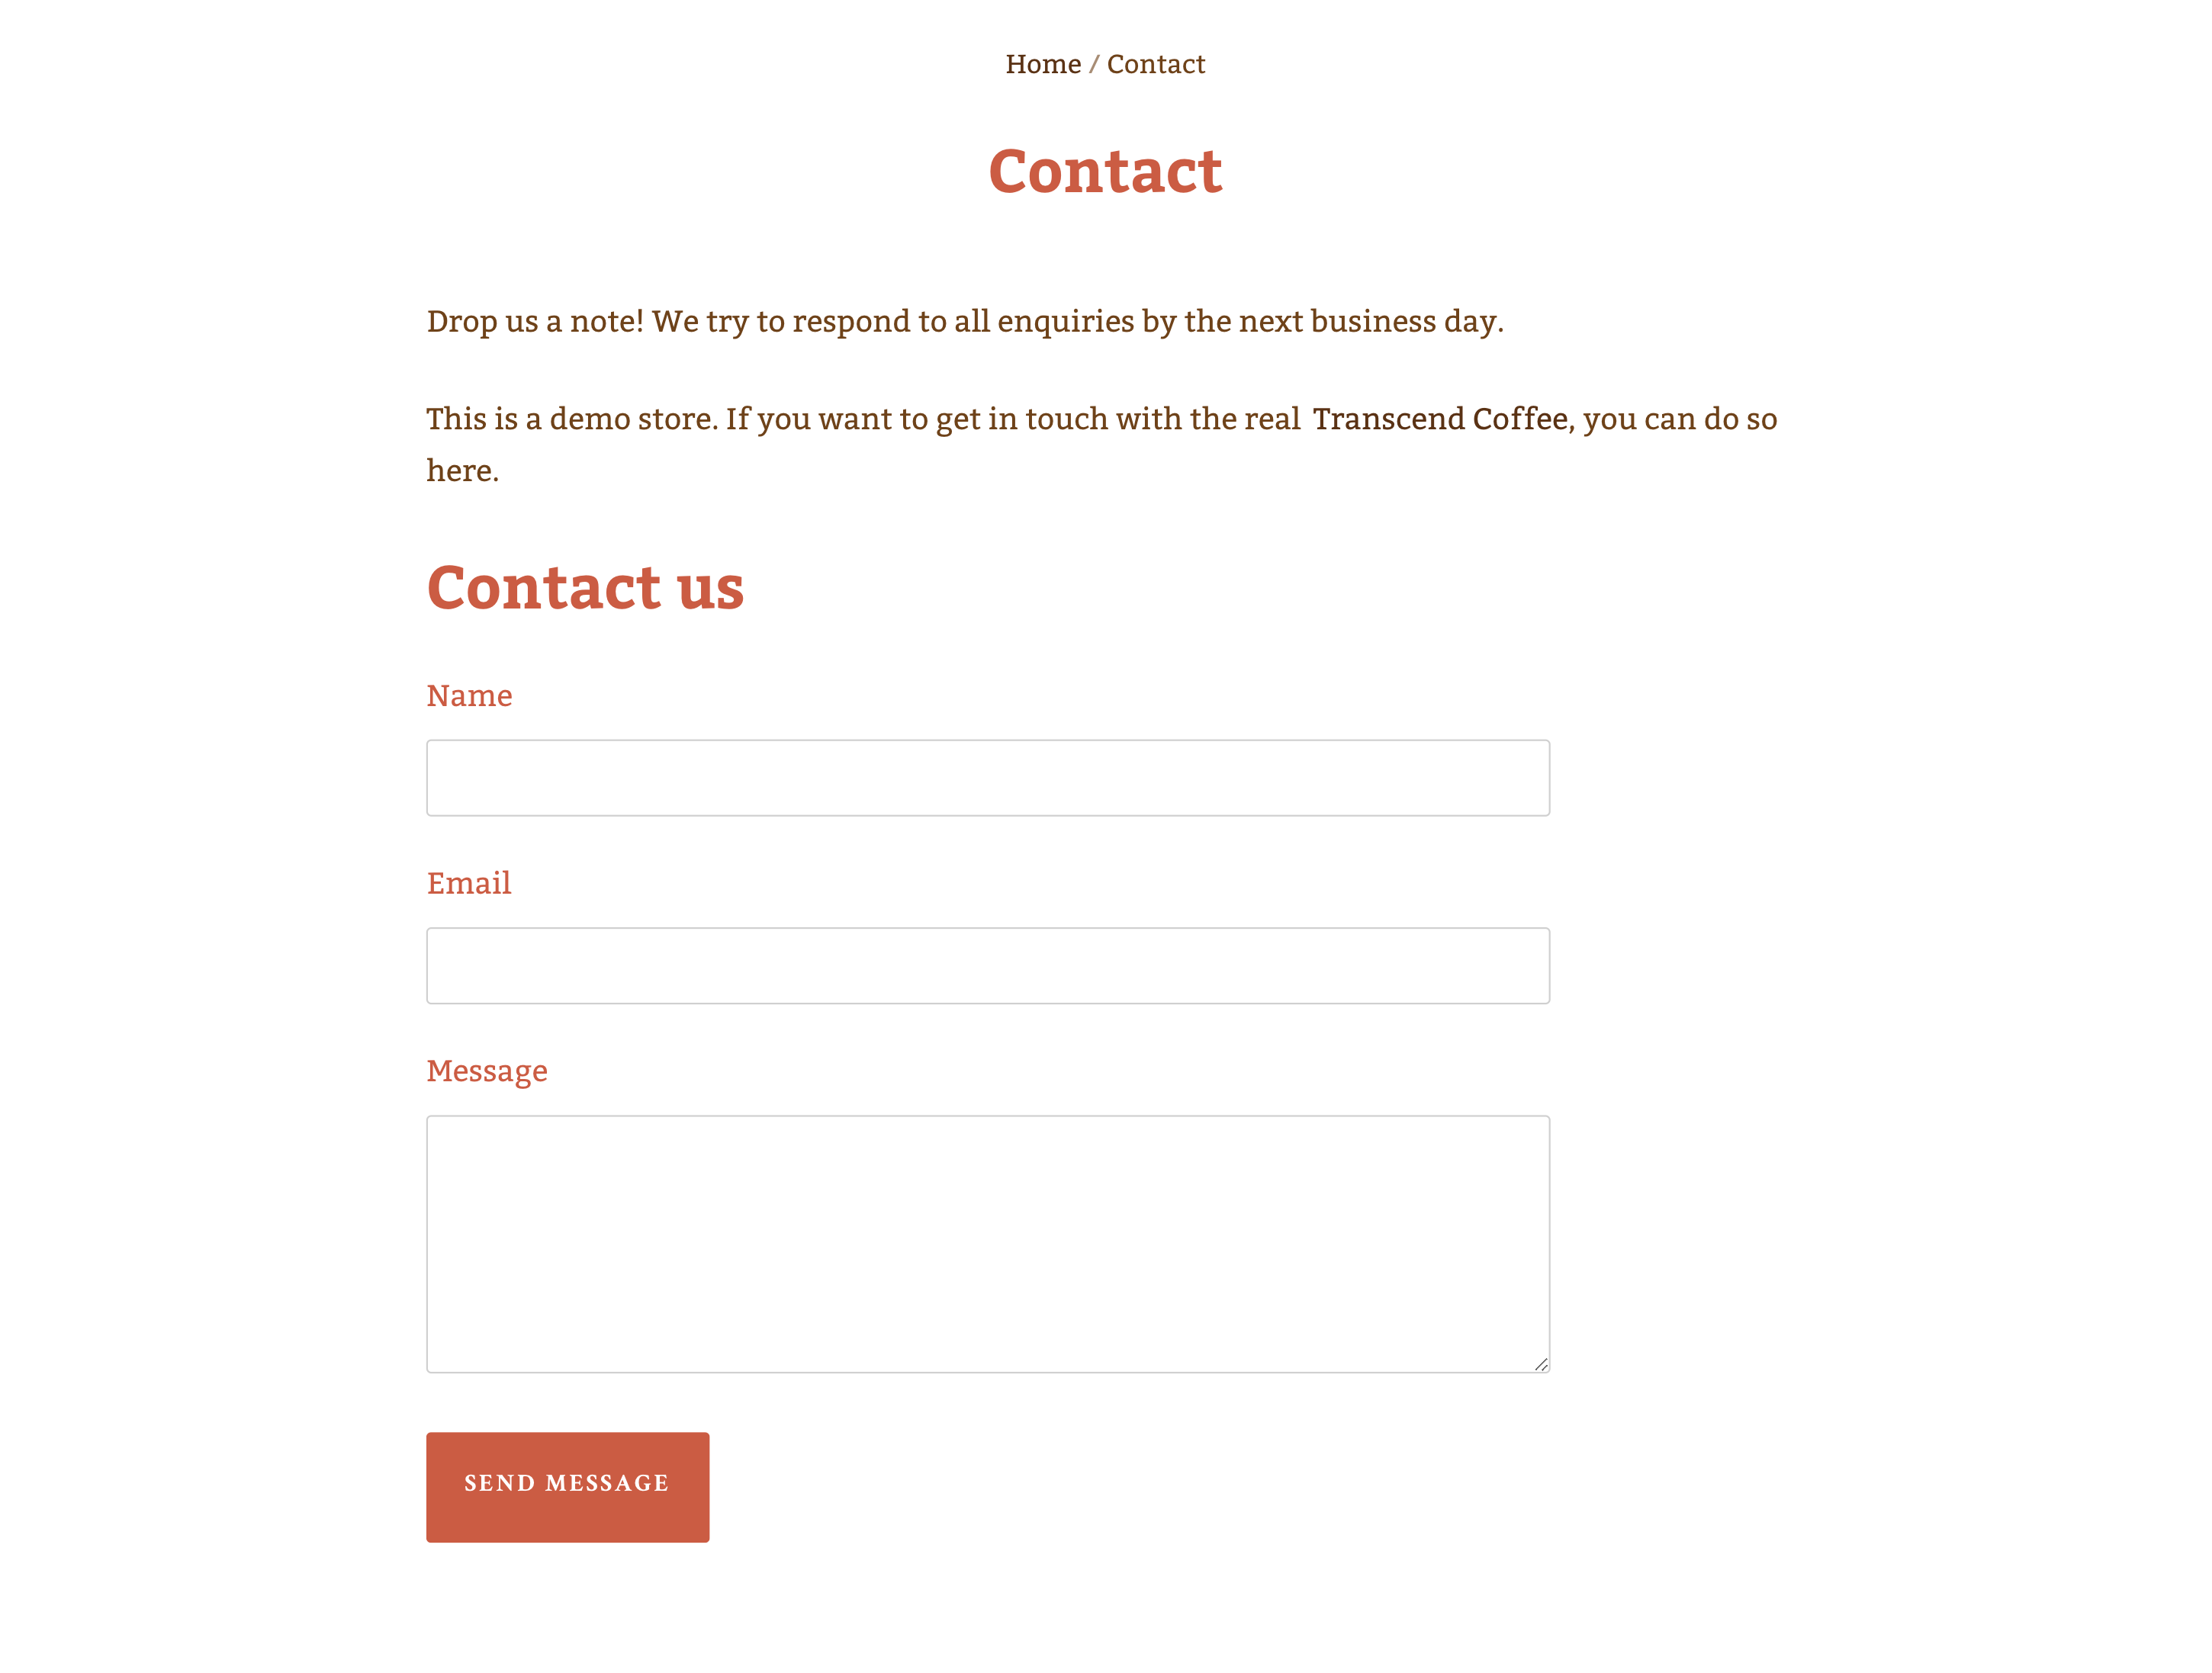 Contact page template's fields for name, email, and message